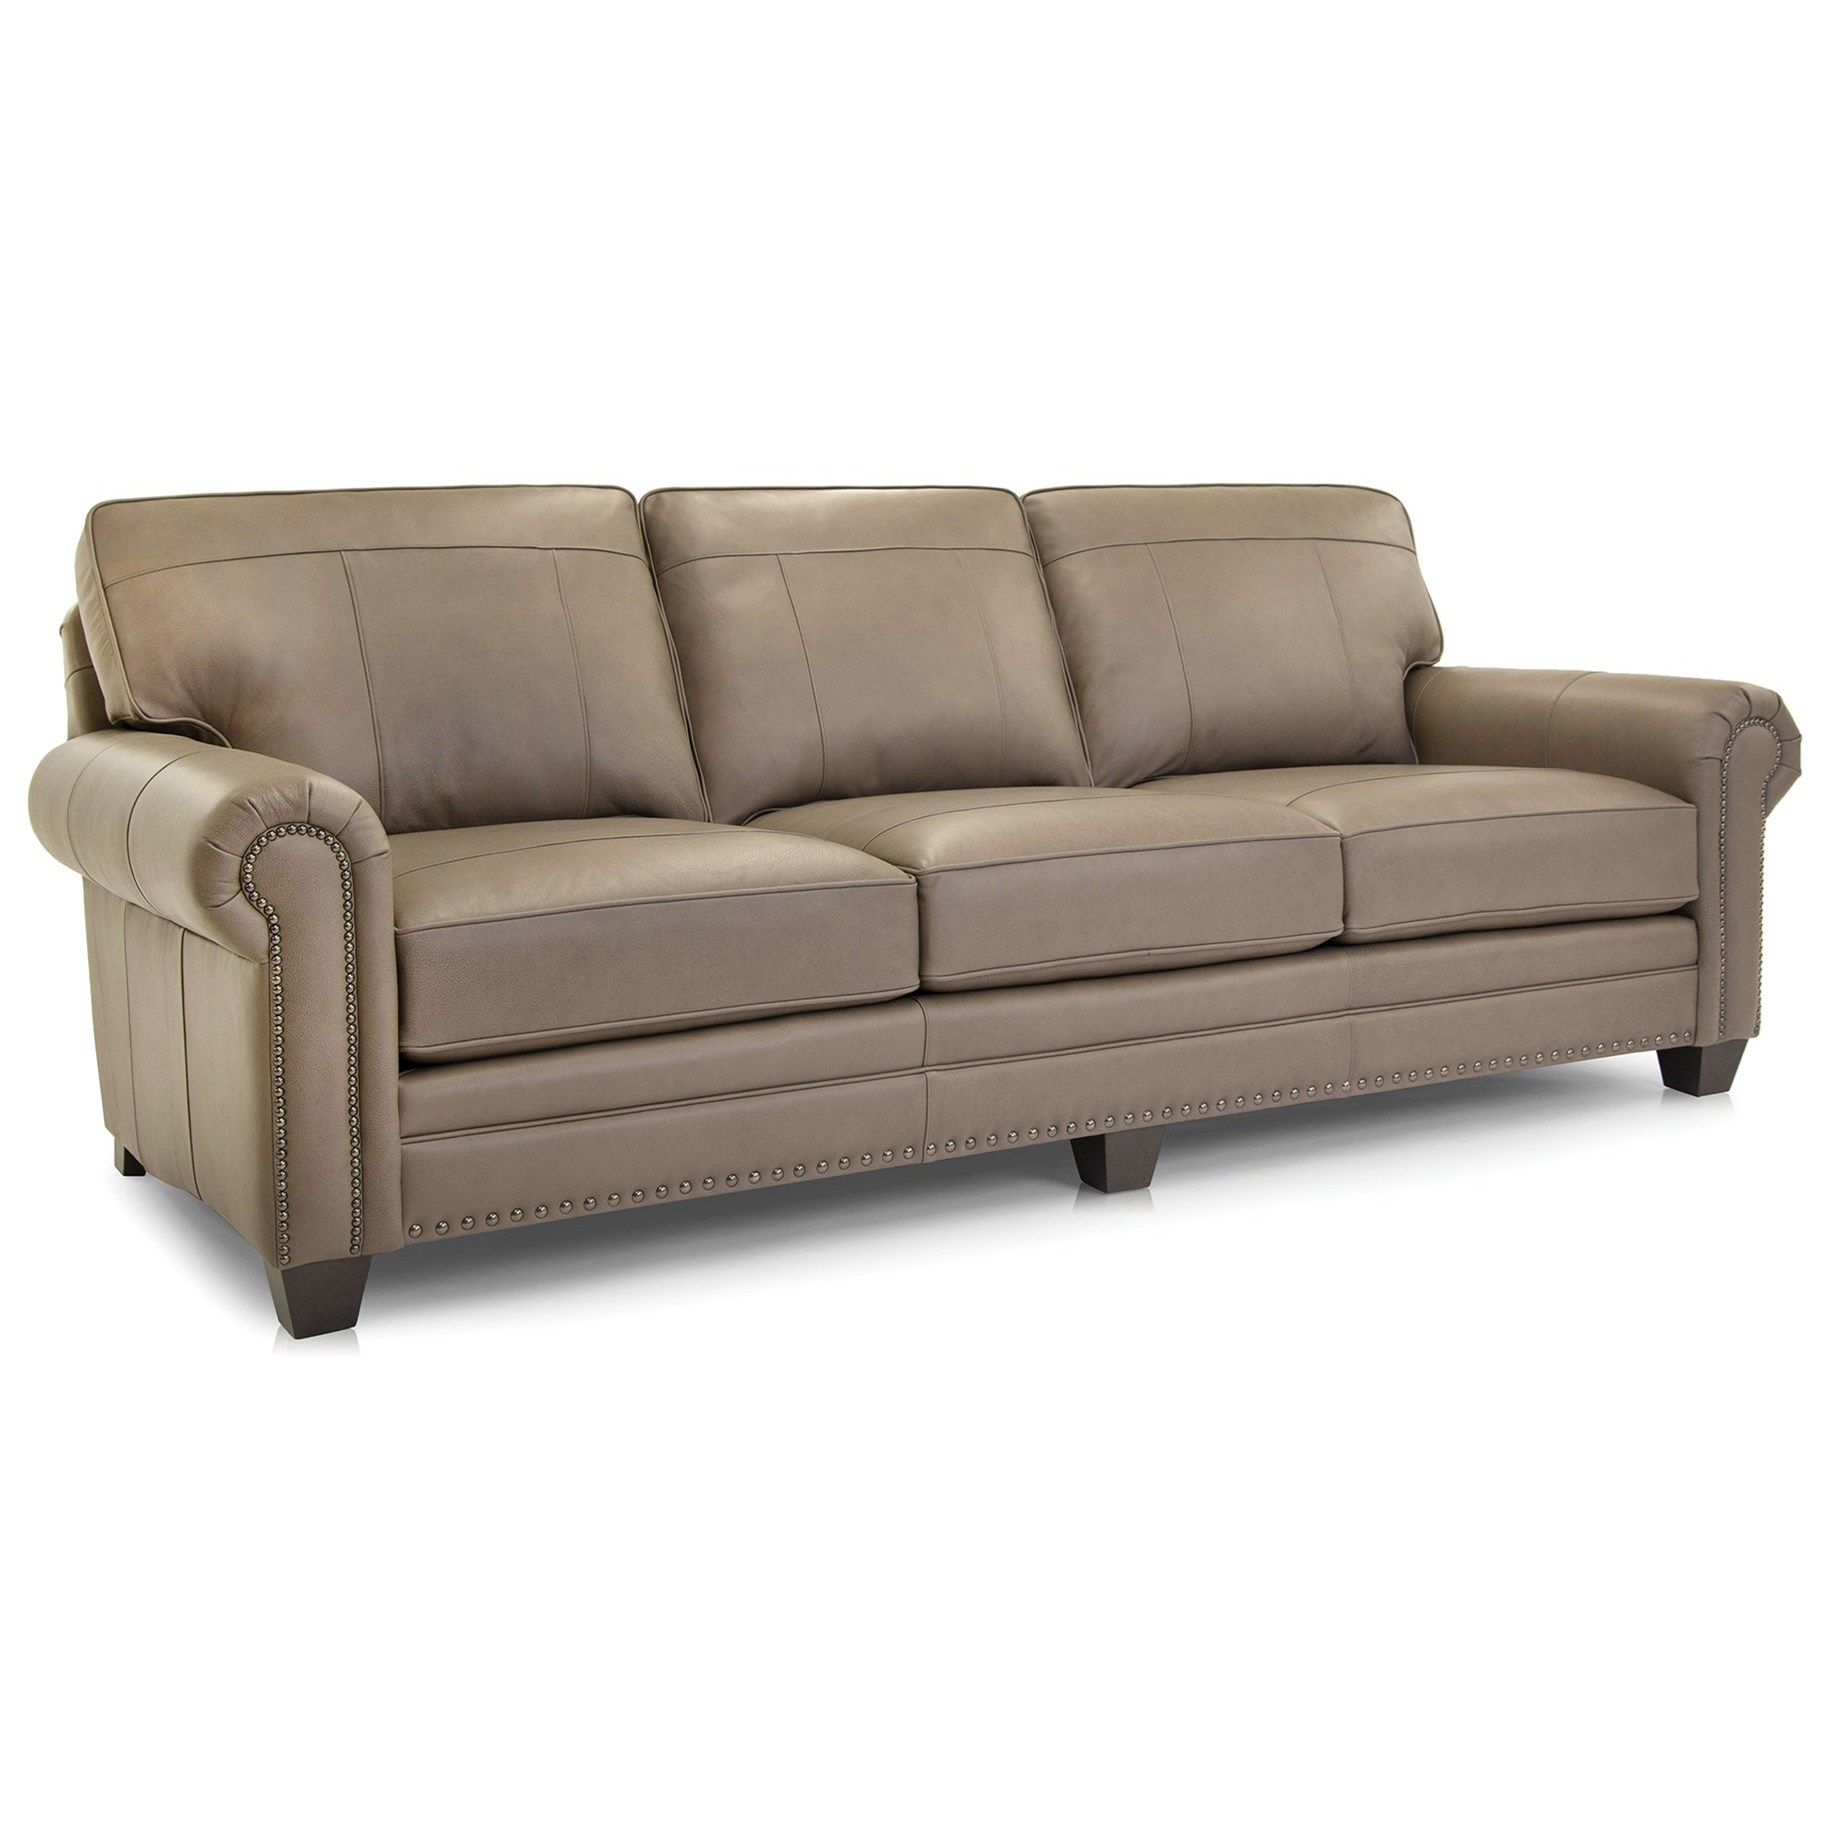 253 Sofa by Smith Brothers at Rooms for Less